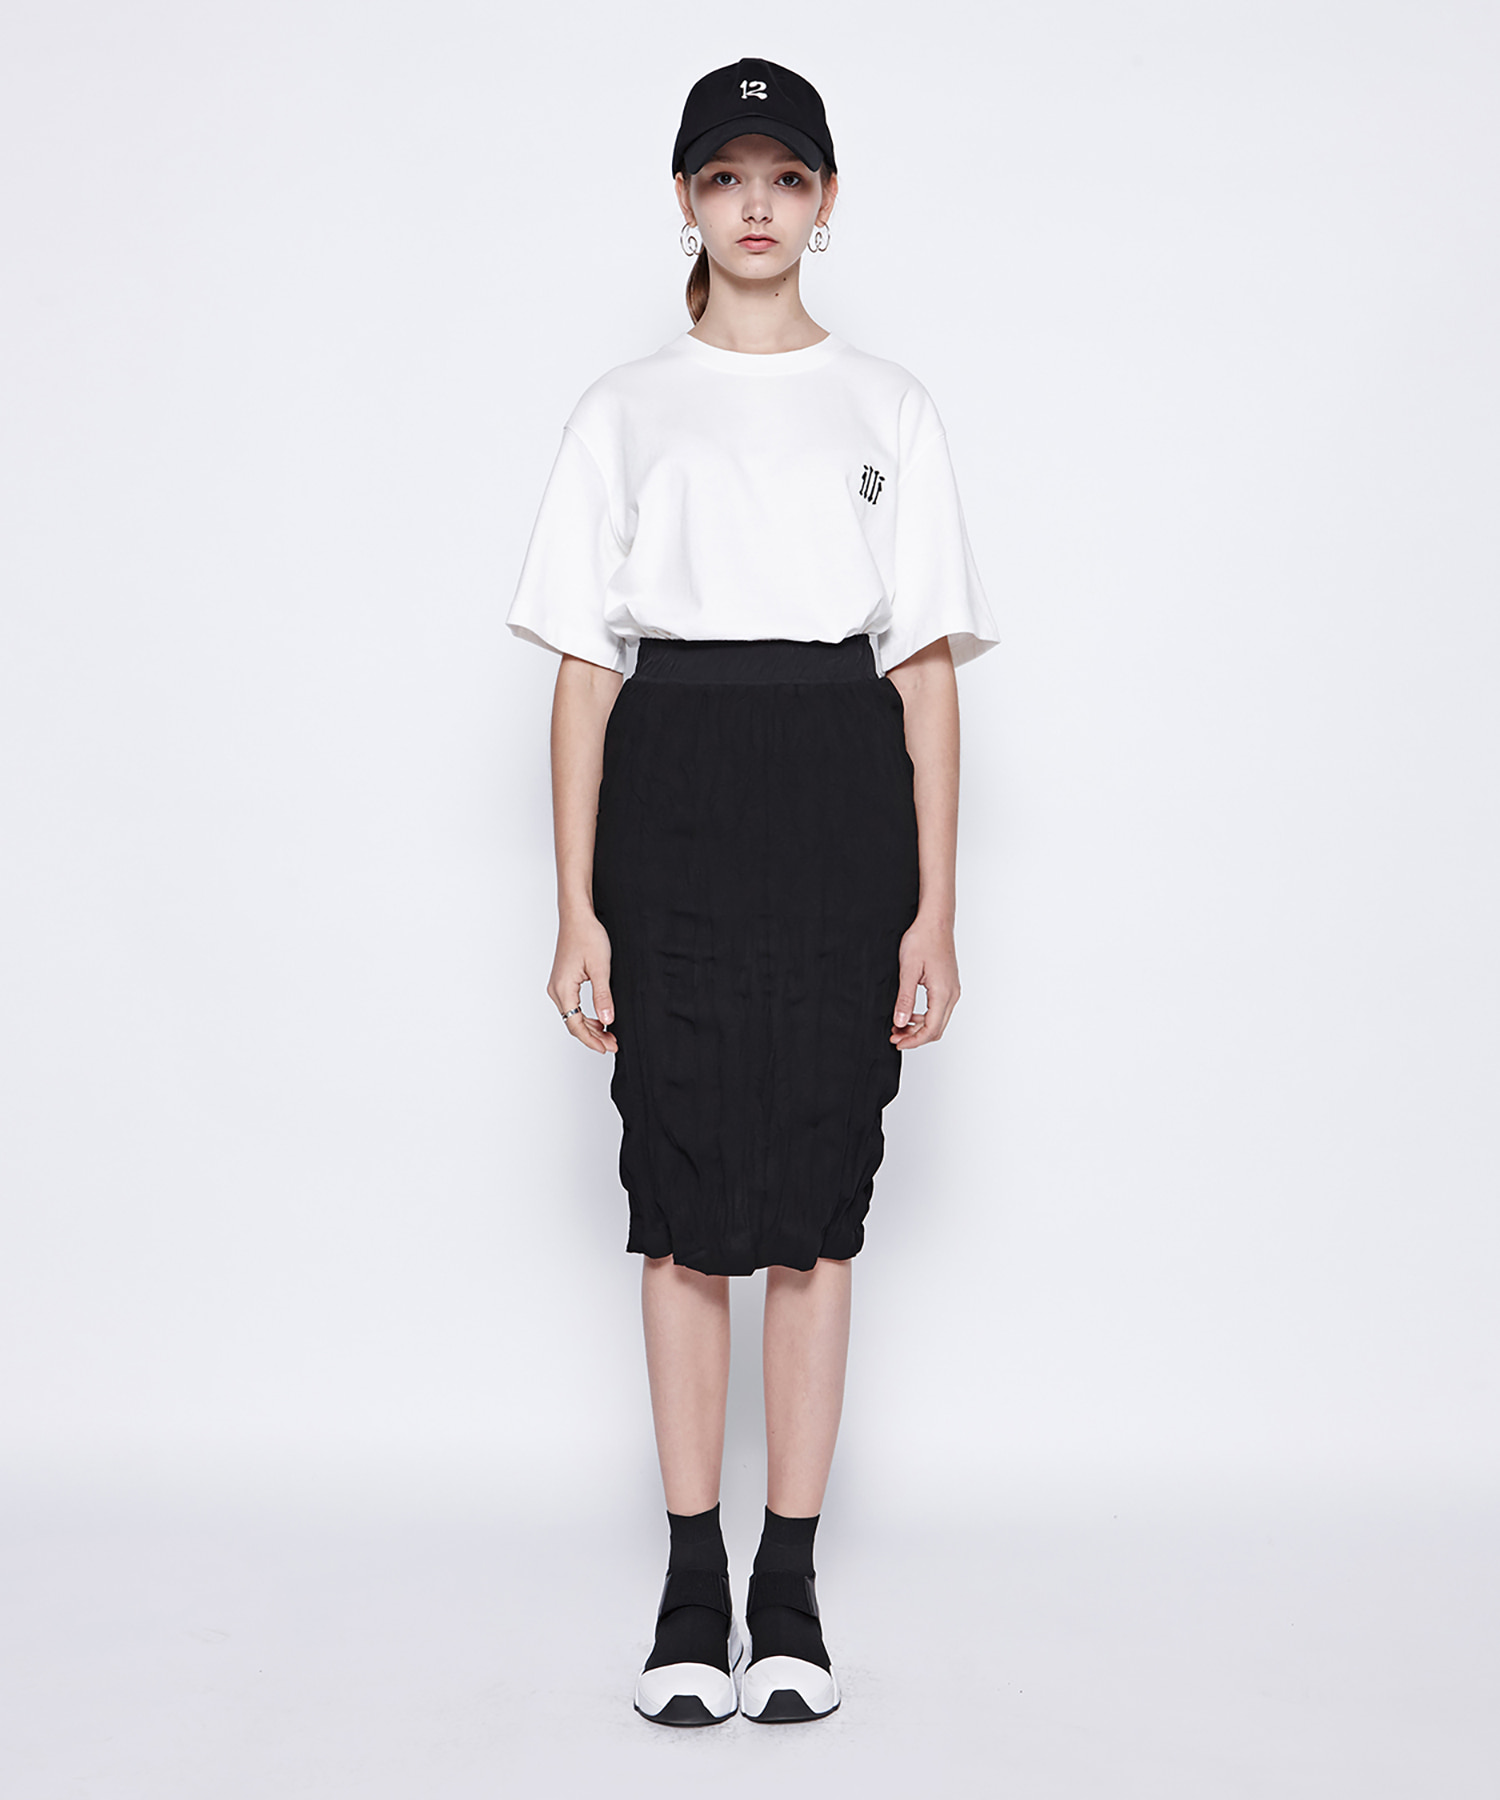 [DGNAK12,illi] Washing Pleats Midi Skirt (BK)